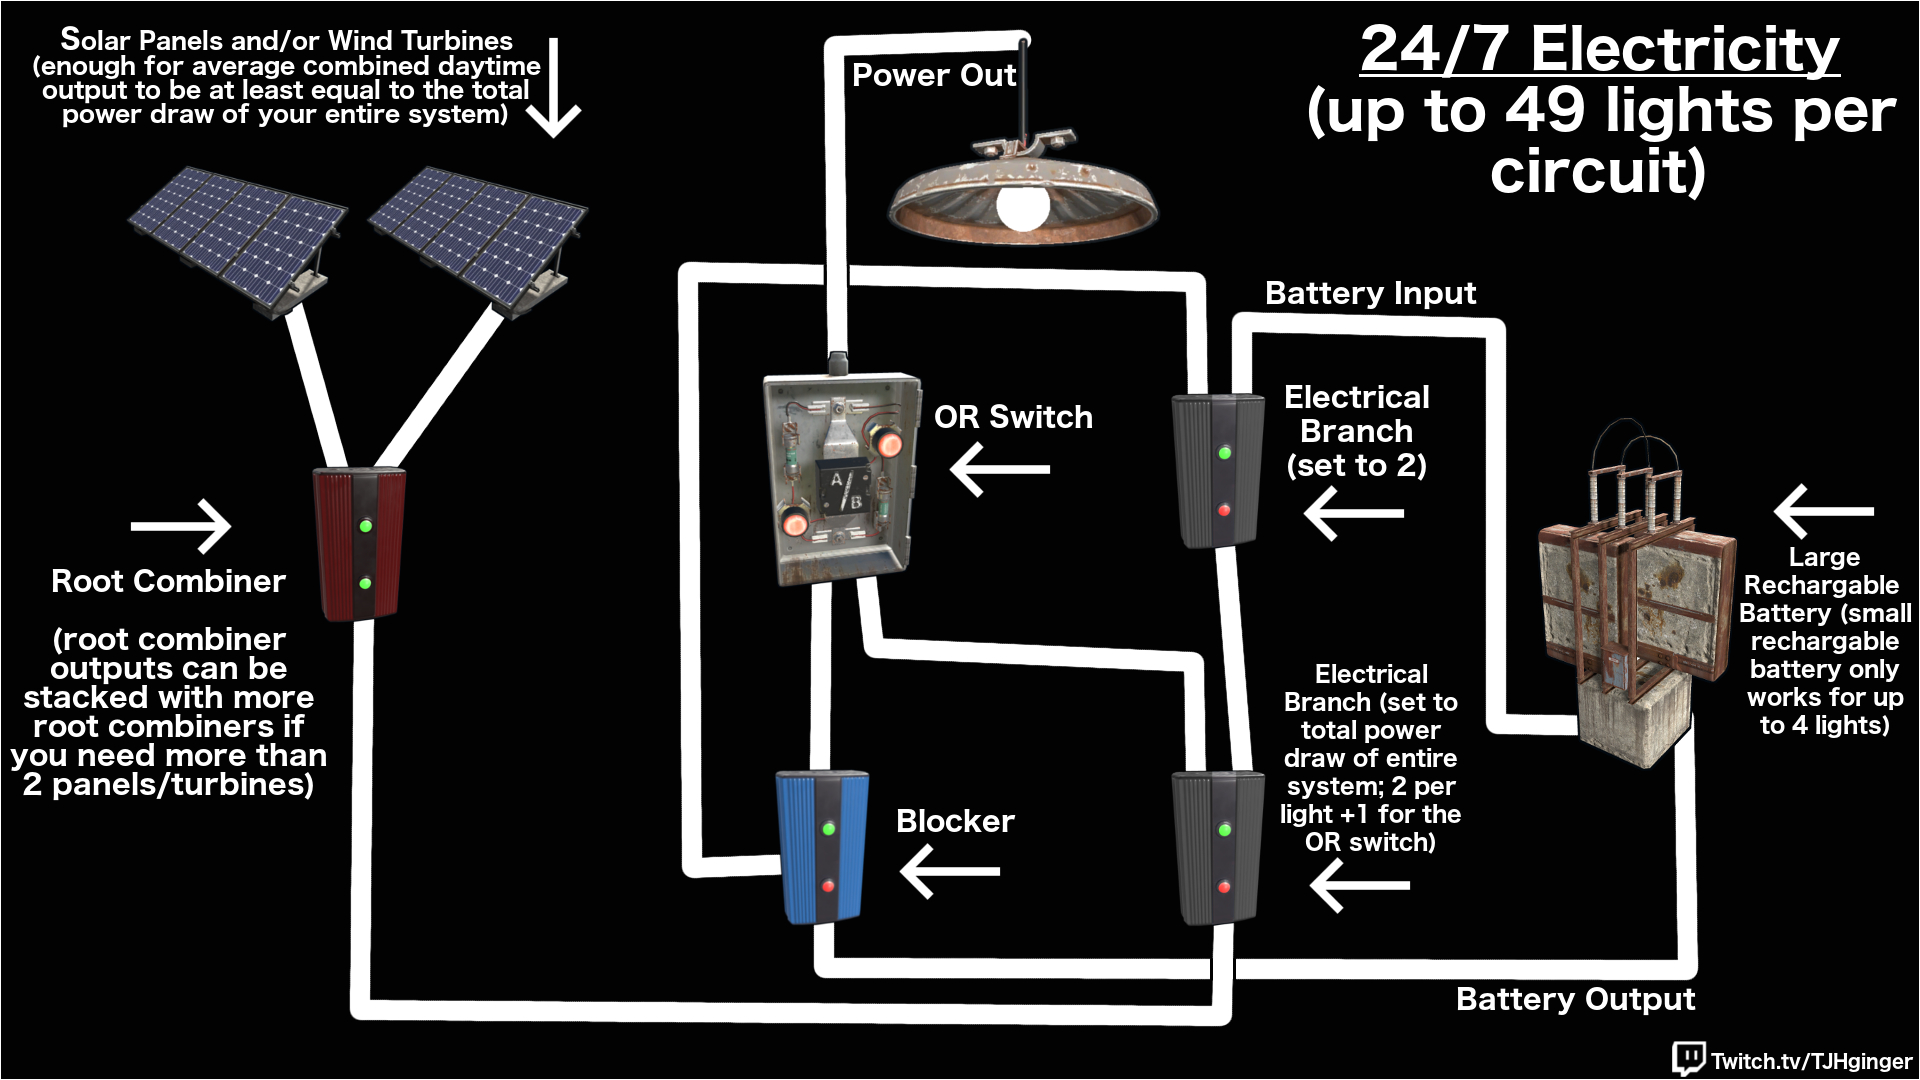 imagehow to run lights 24 7 with no flickering